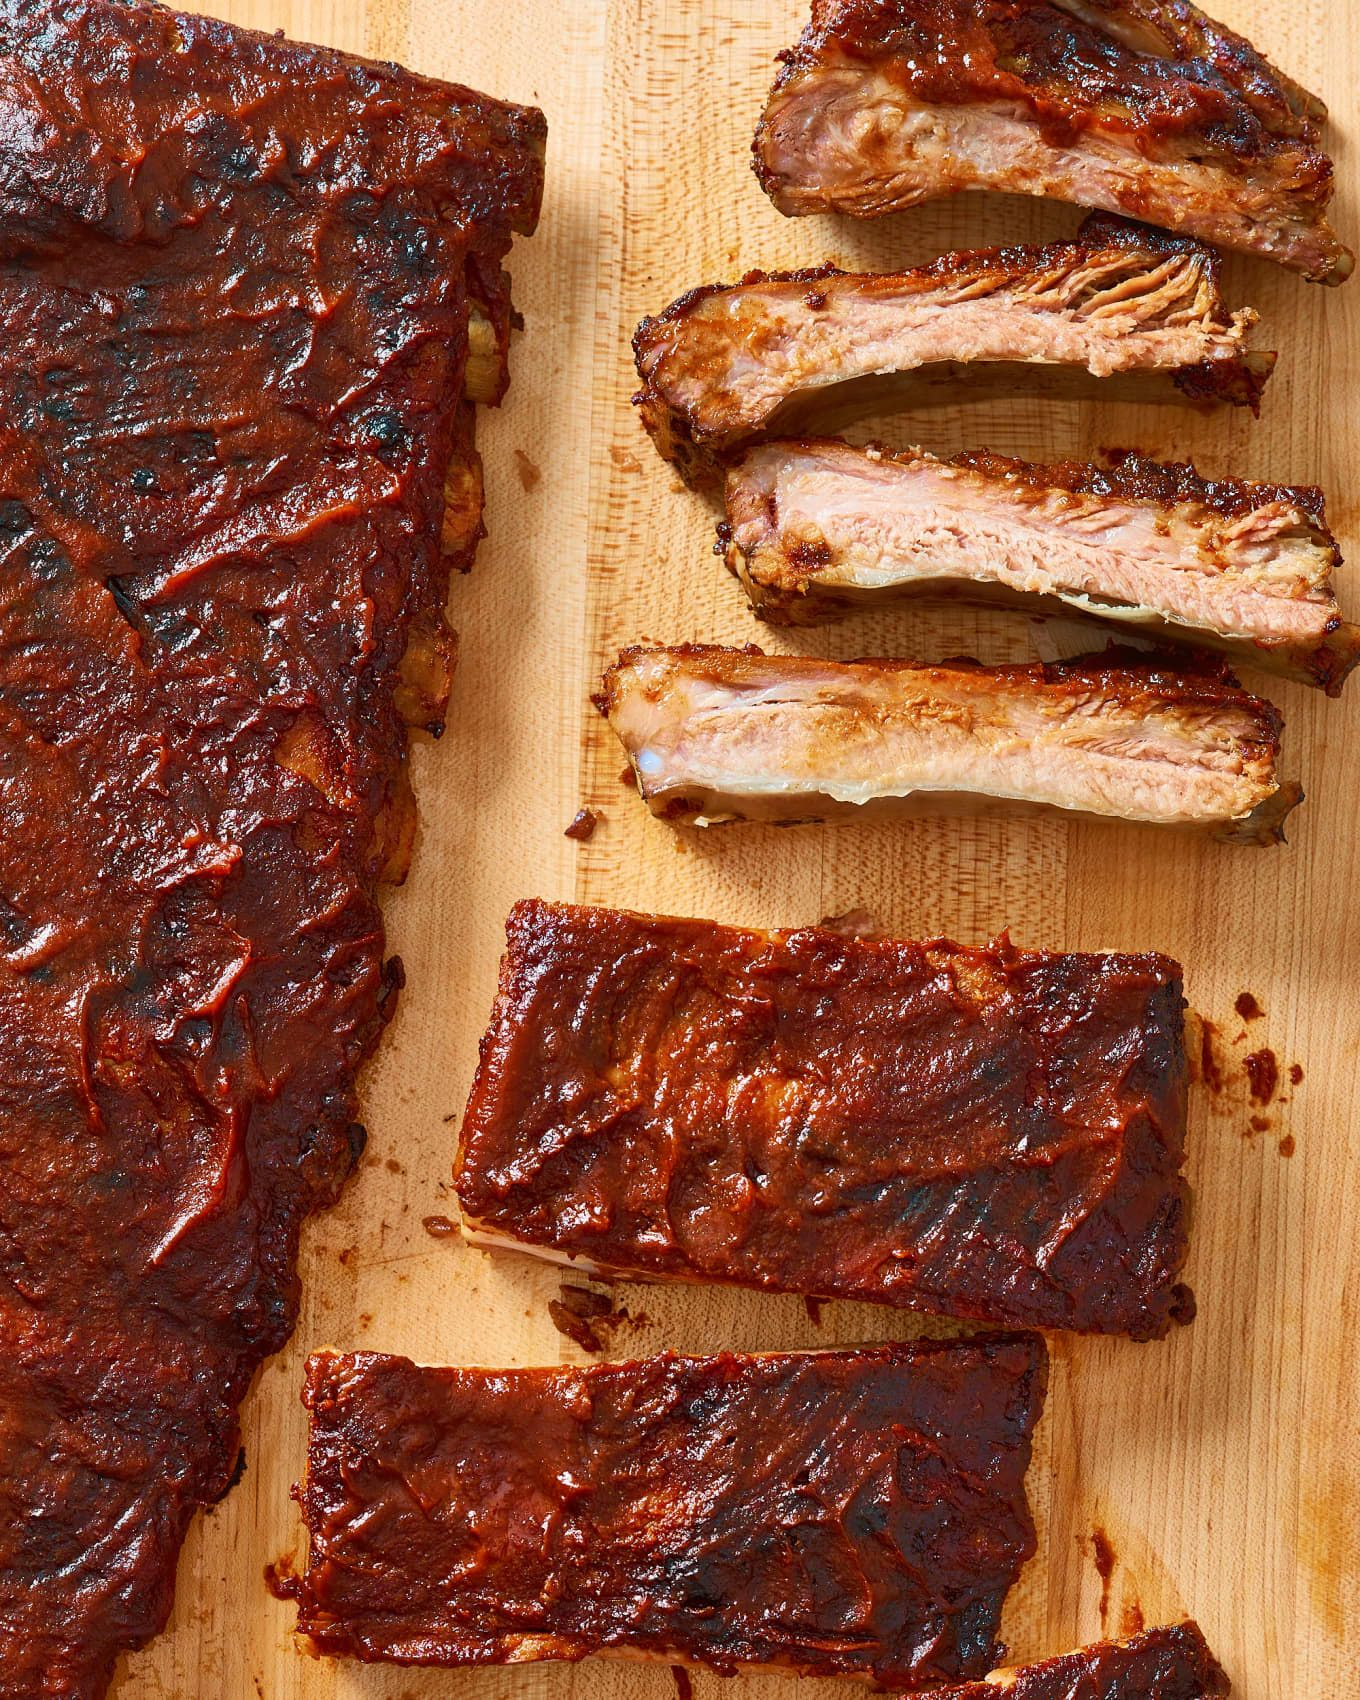 How To Make Great Ribs in the Oven #ribsinoven